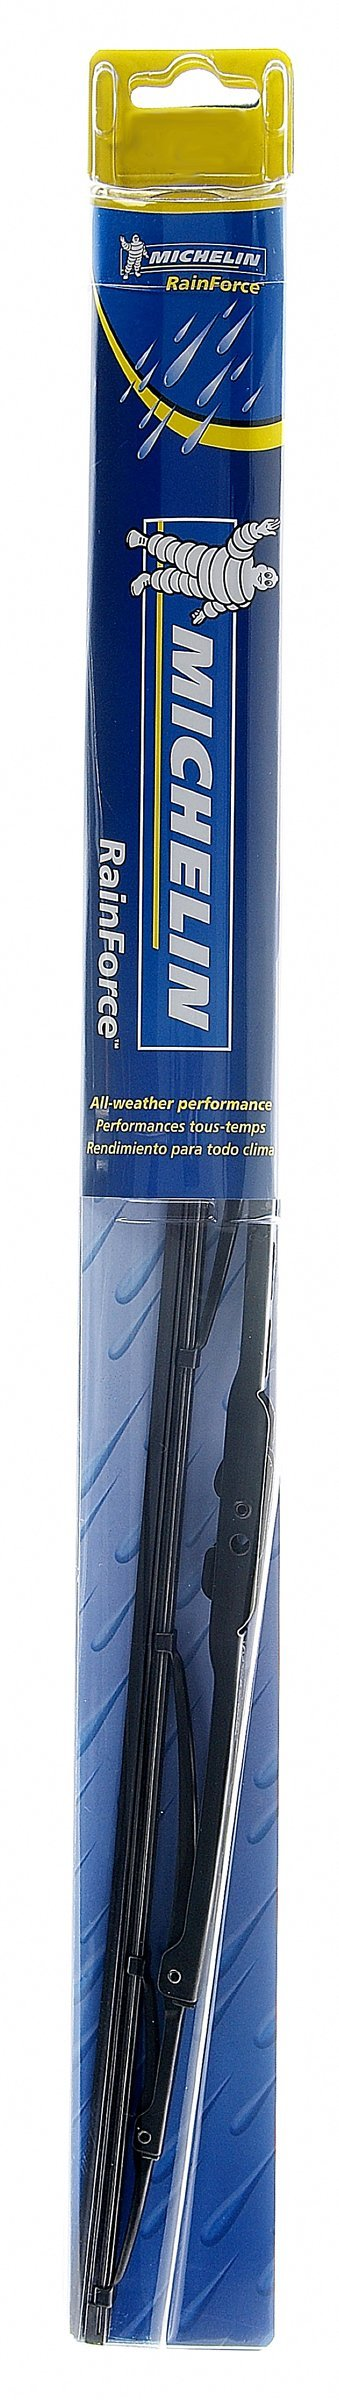 Michelin 3728 RainForce All Weather Performance Windshield Wiper Blade, 28'' (Pack of 1)